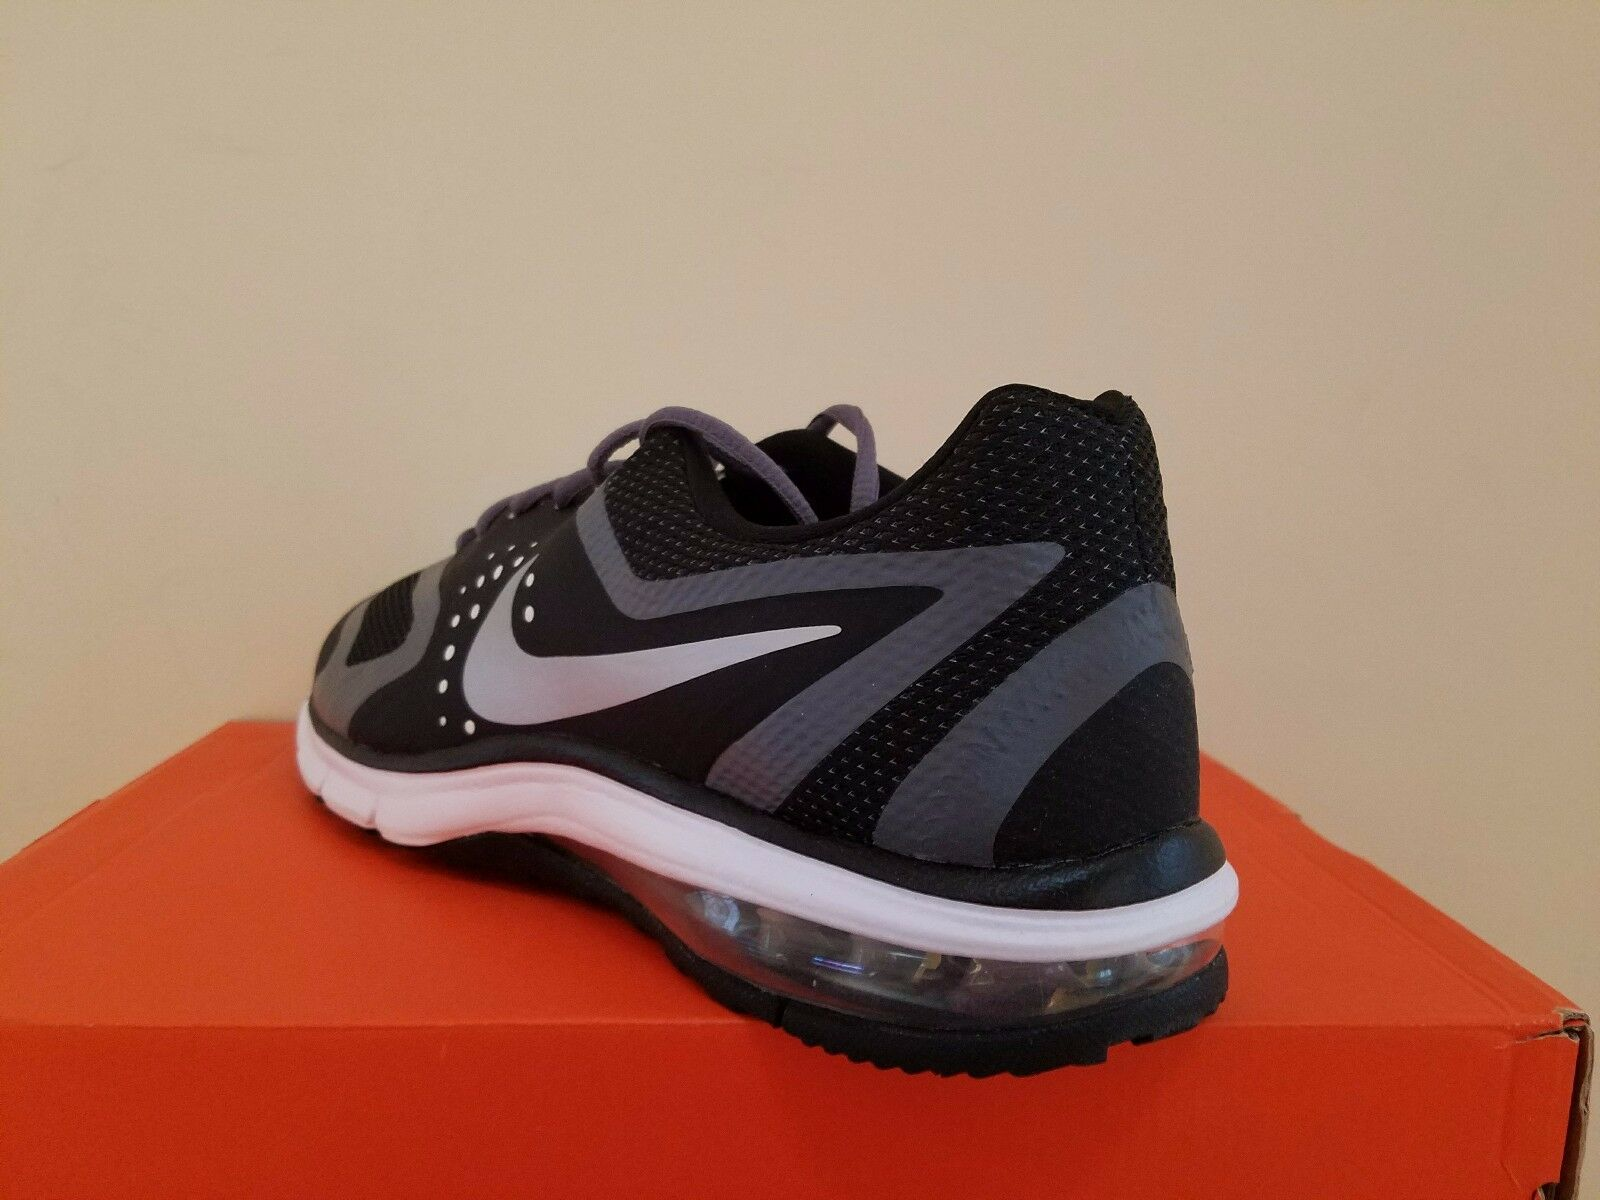 Nike Men's Air Max Max Max Premiere Run shoes Size 12 NIB 4b365b